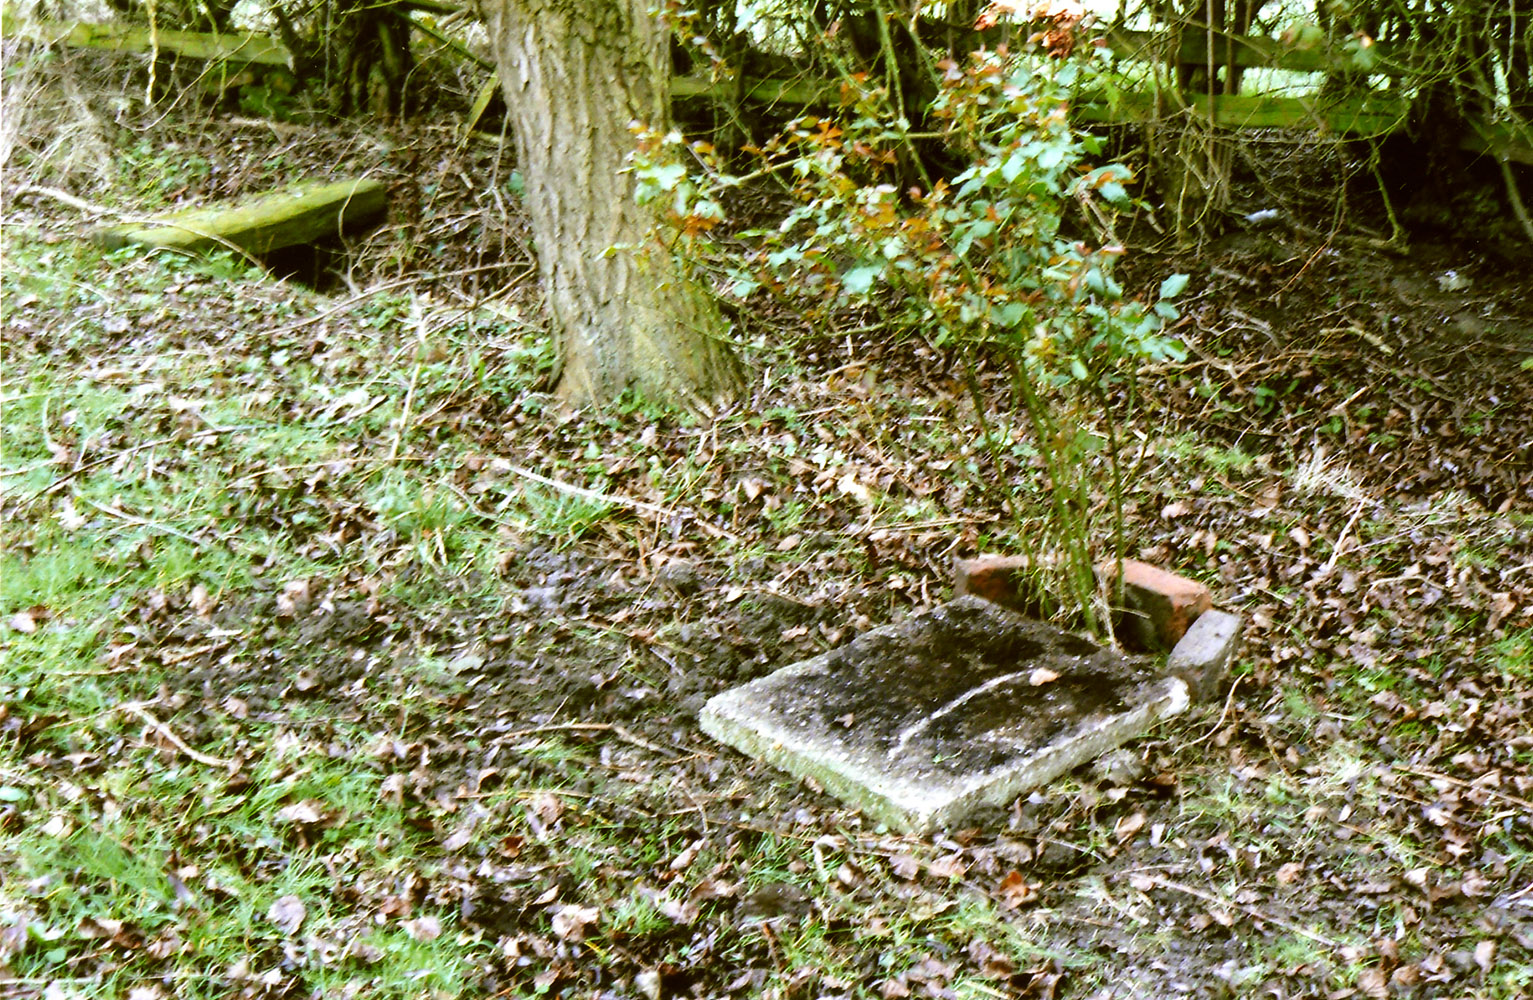 Believed to be the simple grave where Ron Damms' ashes were buried.